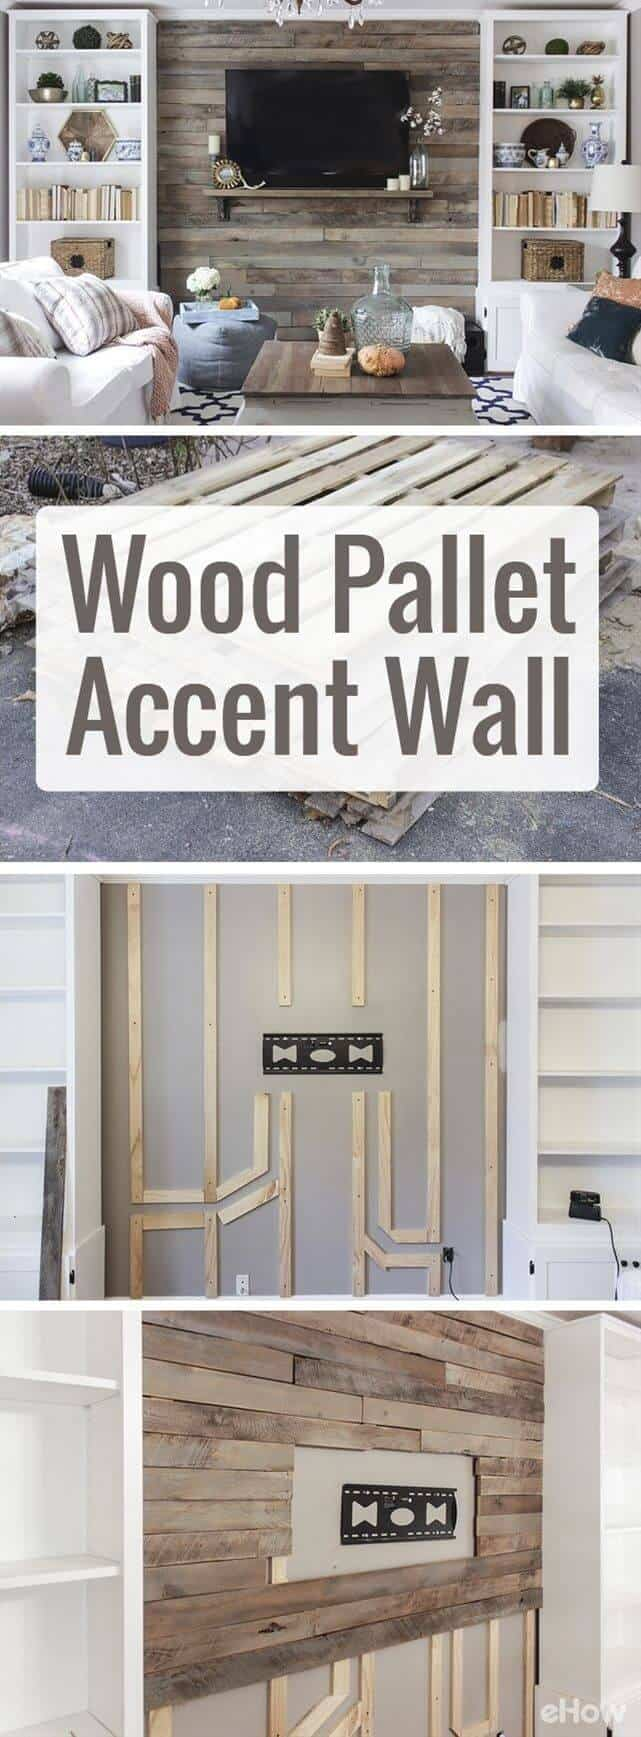 Floor to ceiling pallet wall paneling